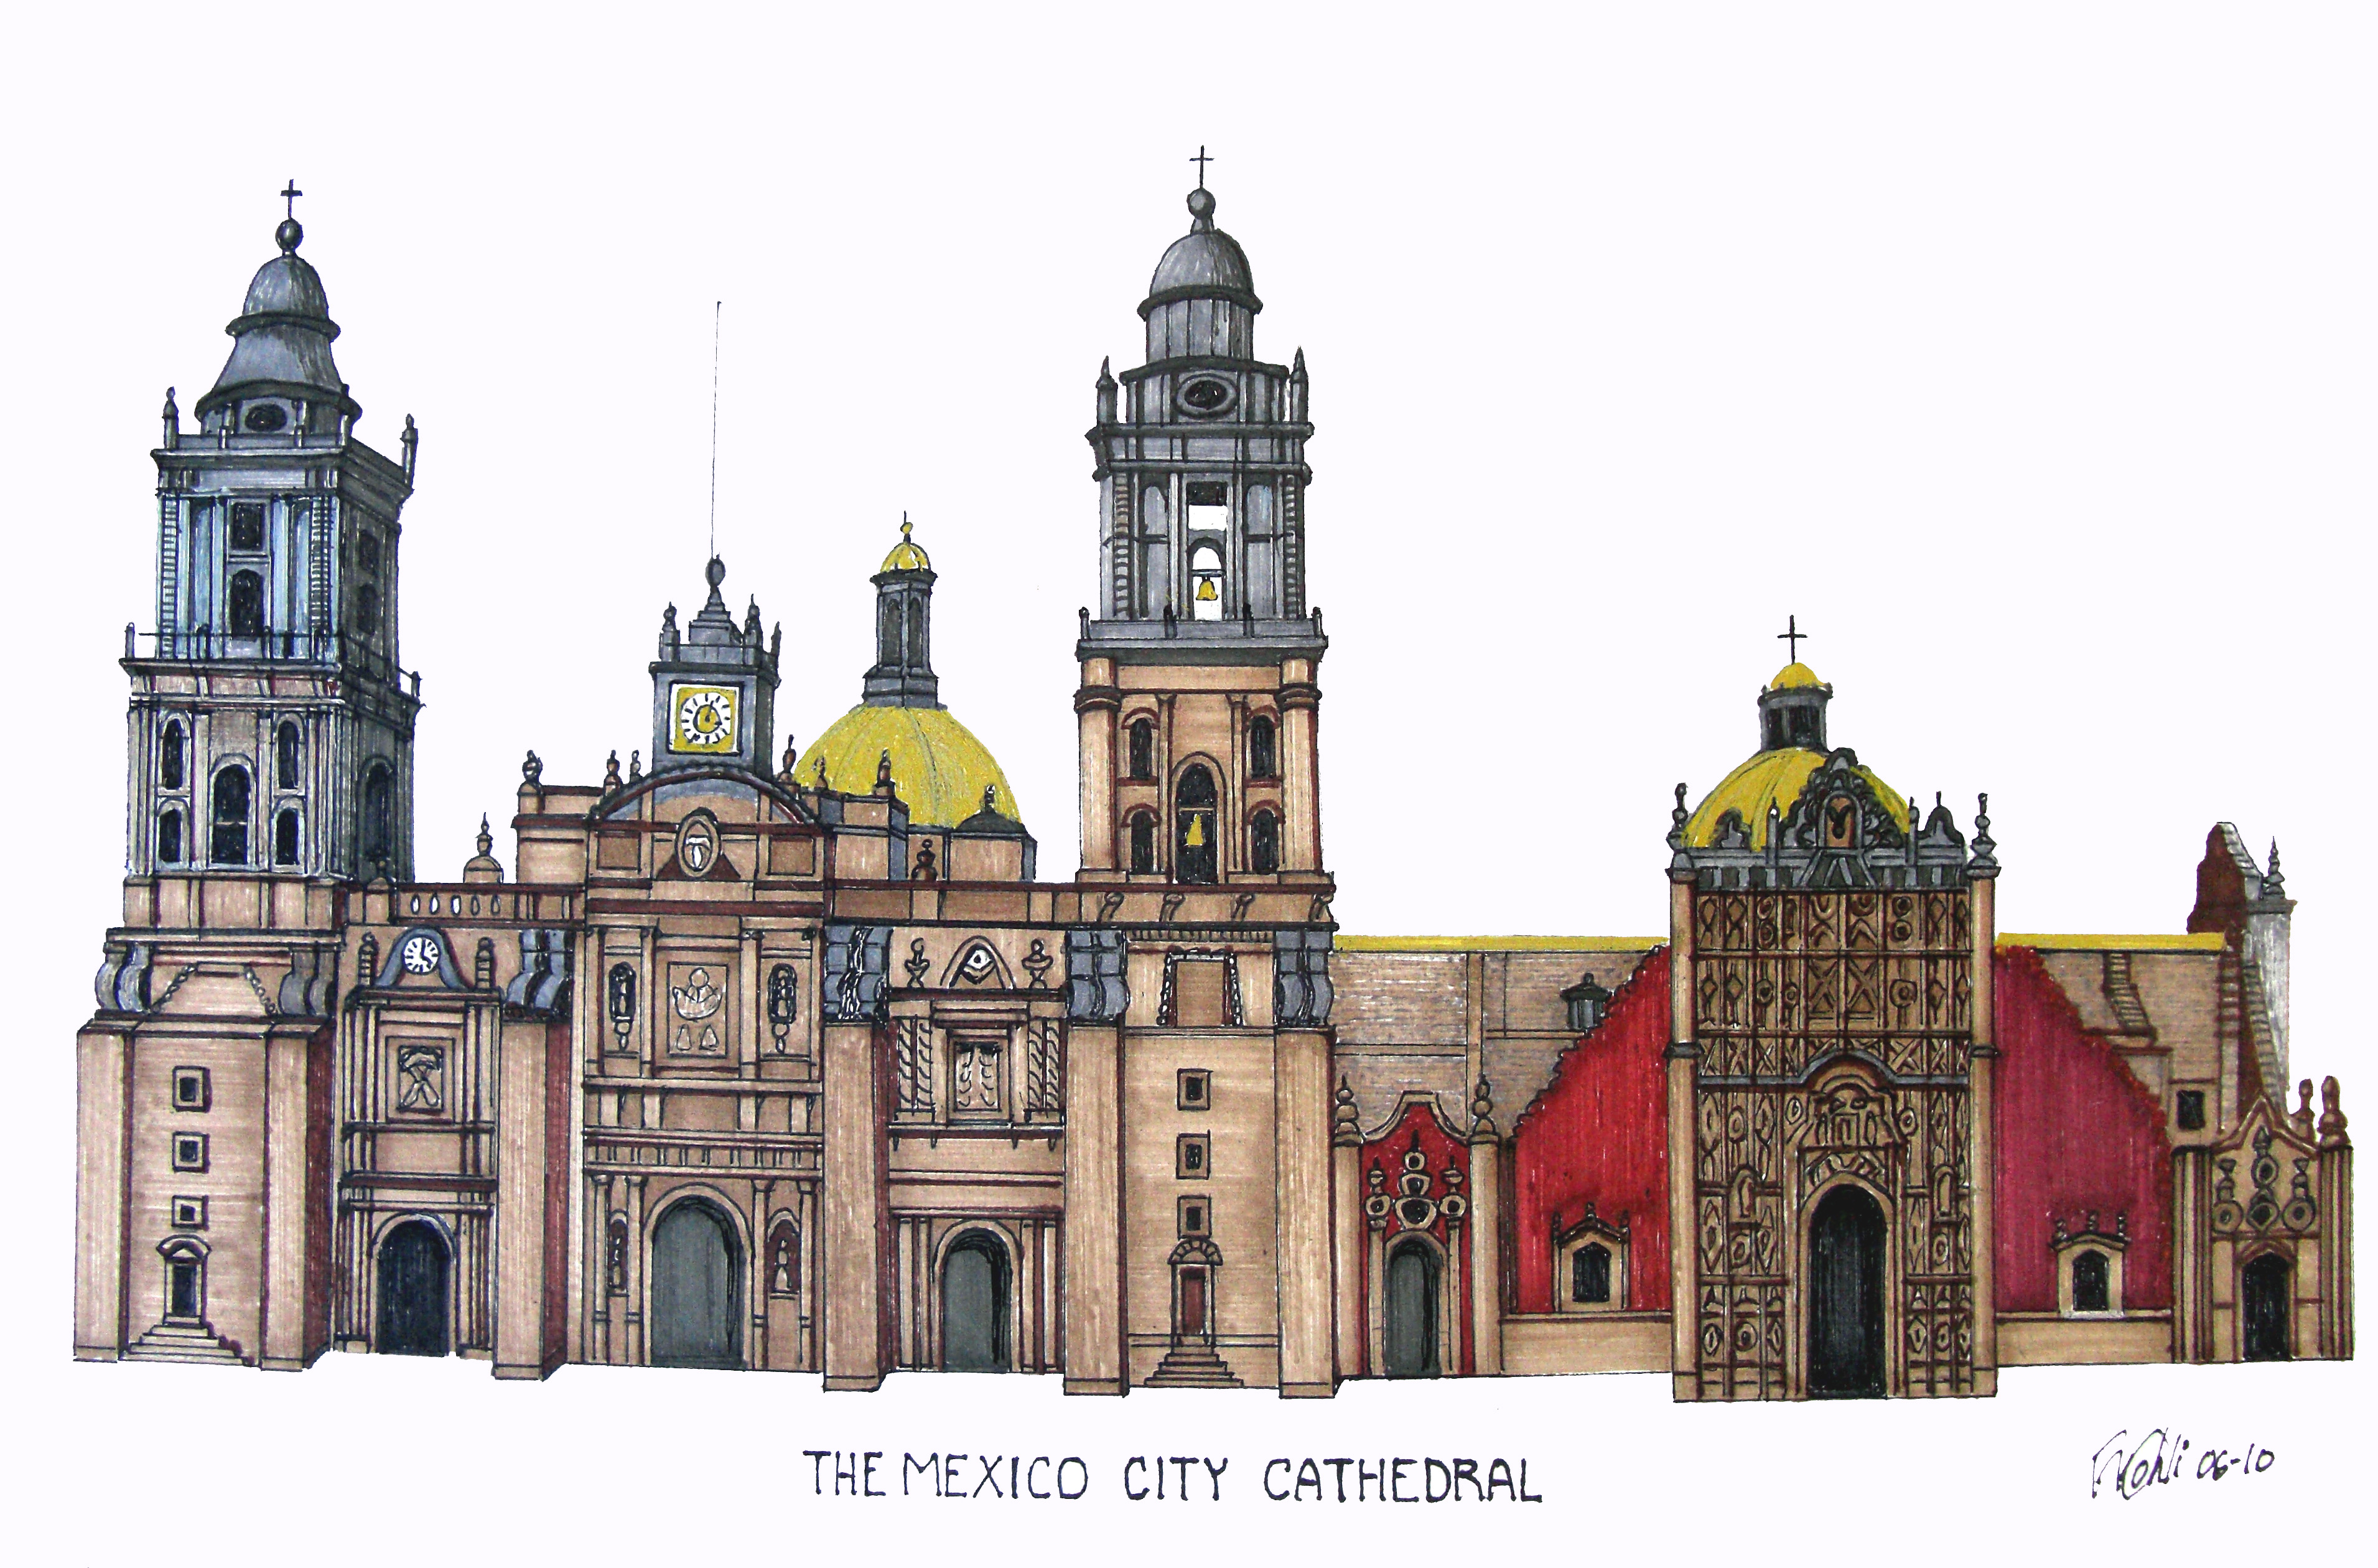 Drawn palace mexico city Kohli cathedral Pen of and